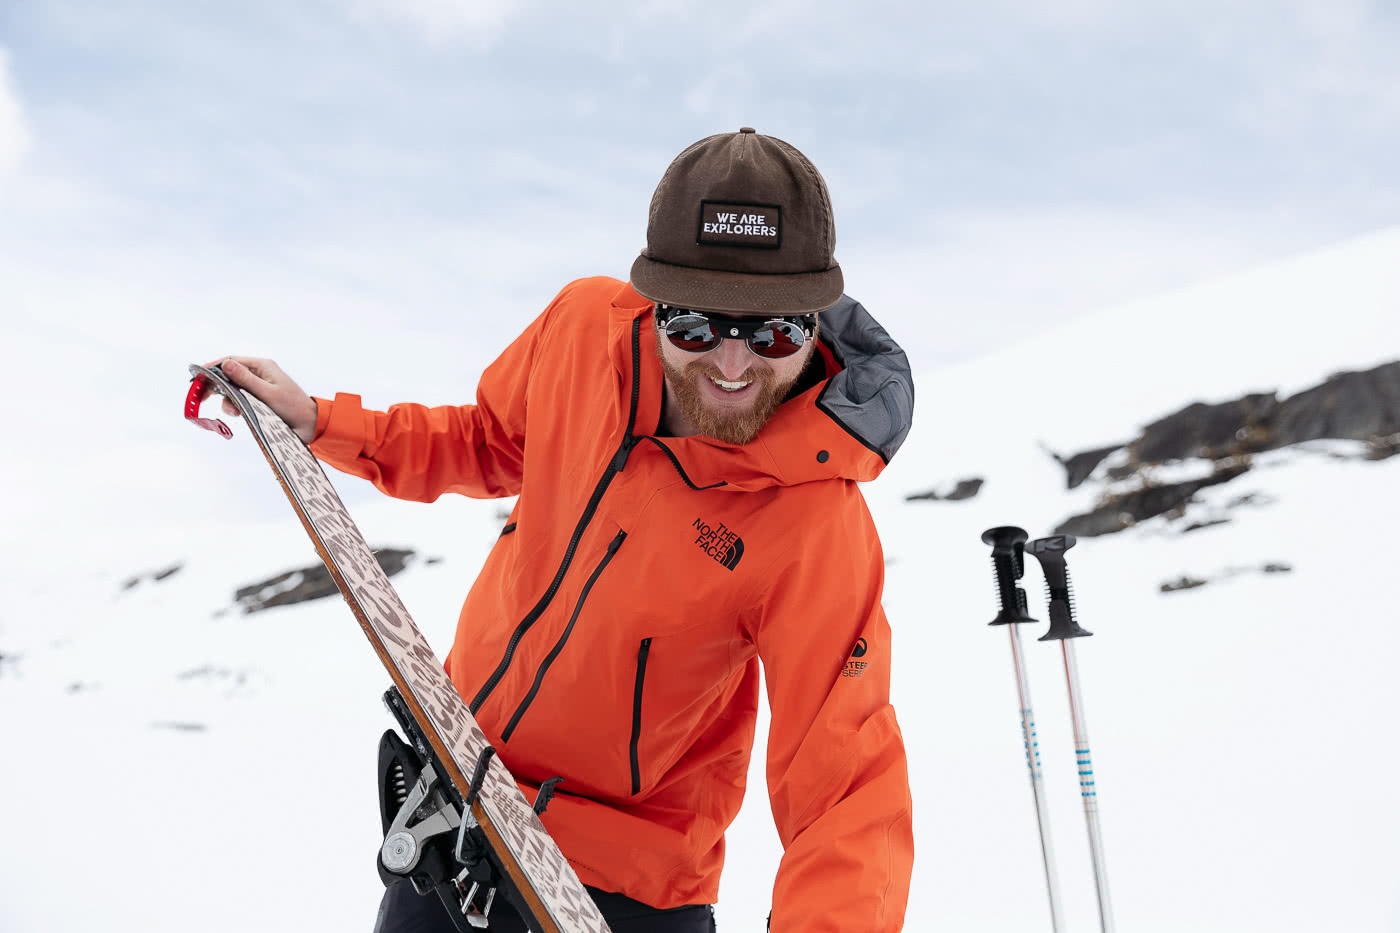 Just How Revolutionary Is FUTURELIGHT Waterproof Breathable Gear? We Tested It Out In NZ, photo by Mark Clinton, the Remarkables, The North Face, New Zealand, skiing, skinning up